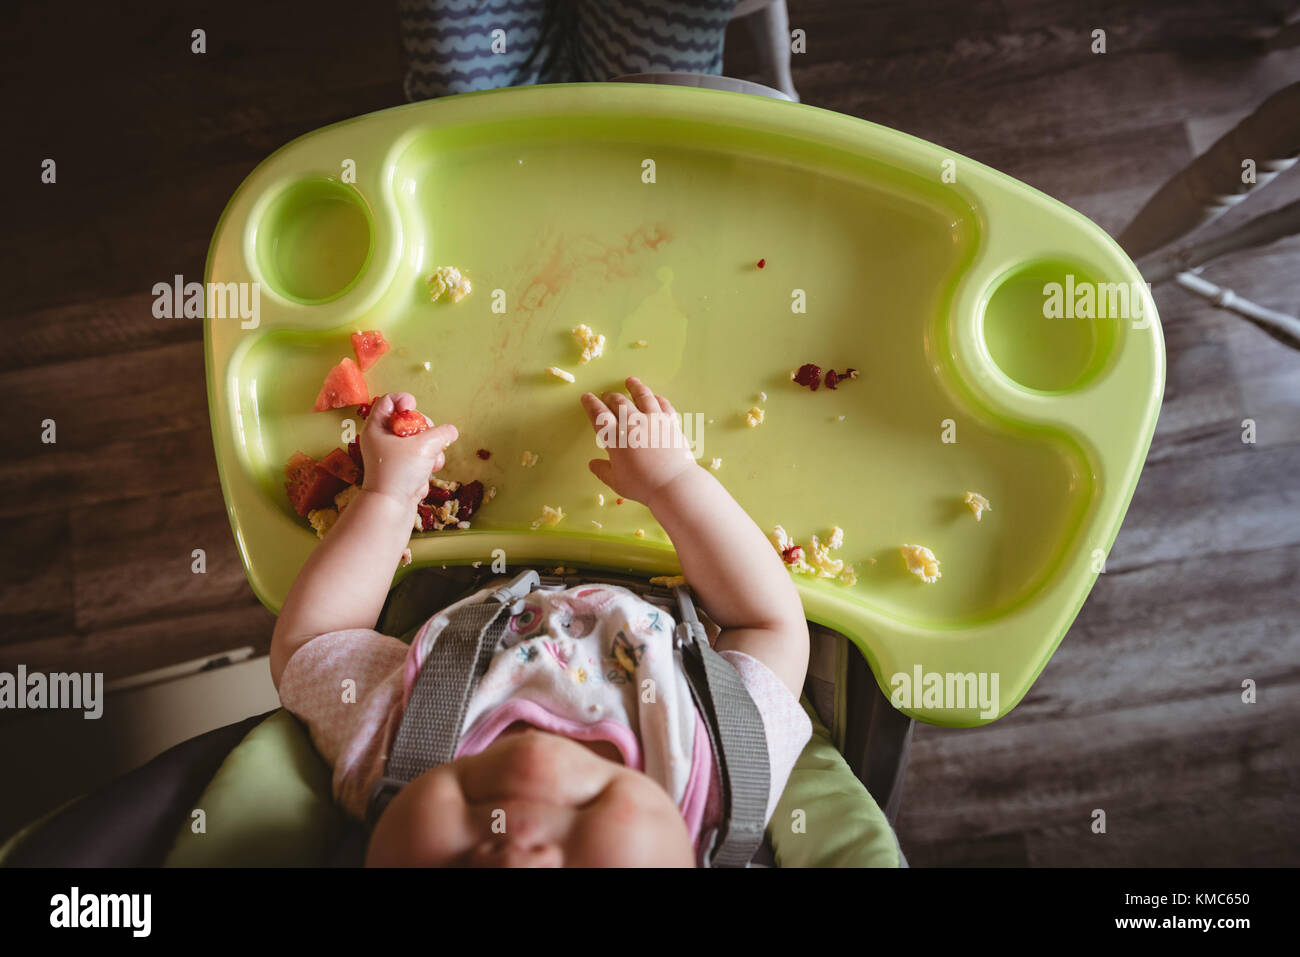 Overhead of baby sitting in high chair - Stock Image